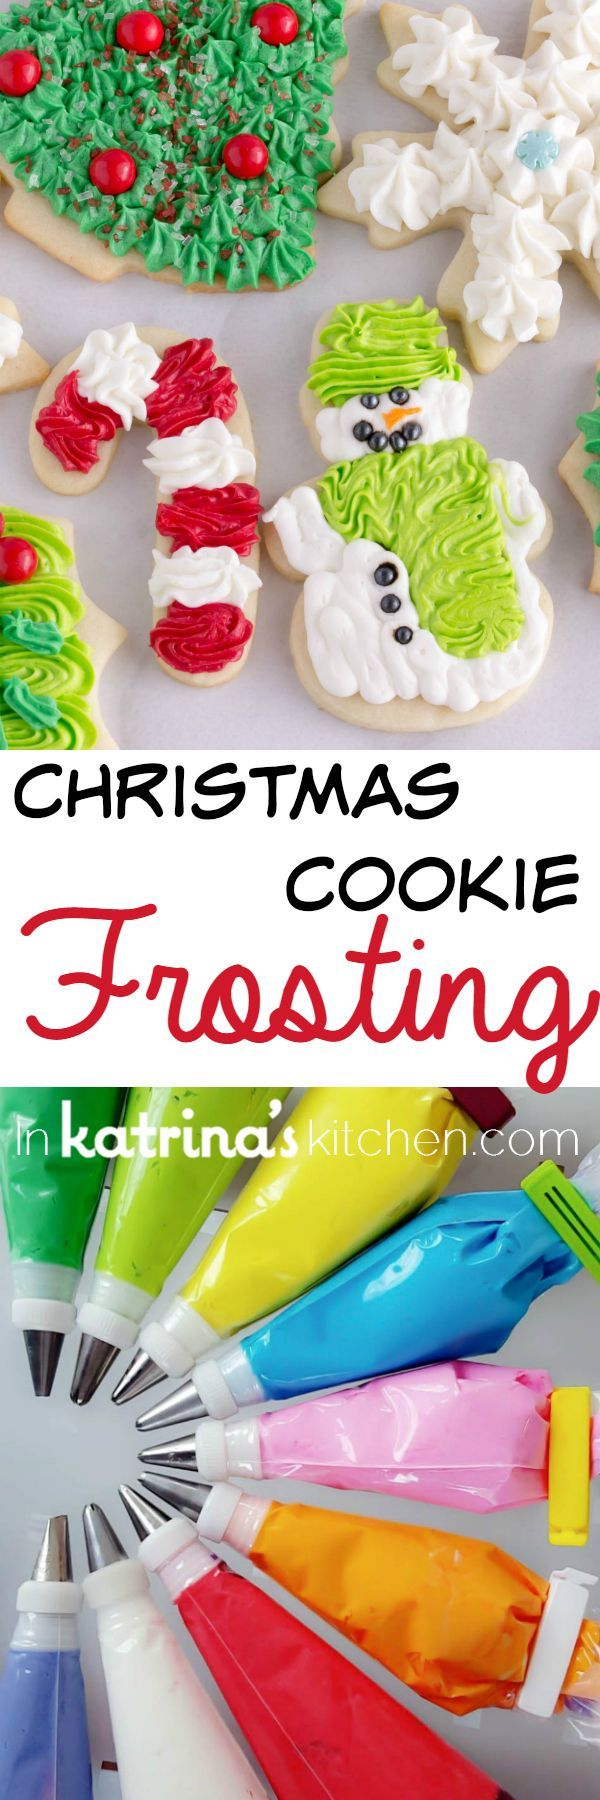 Powdered sugar cookie frosting recipes